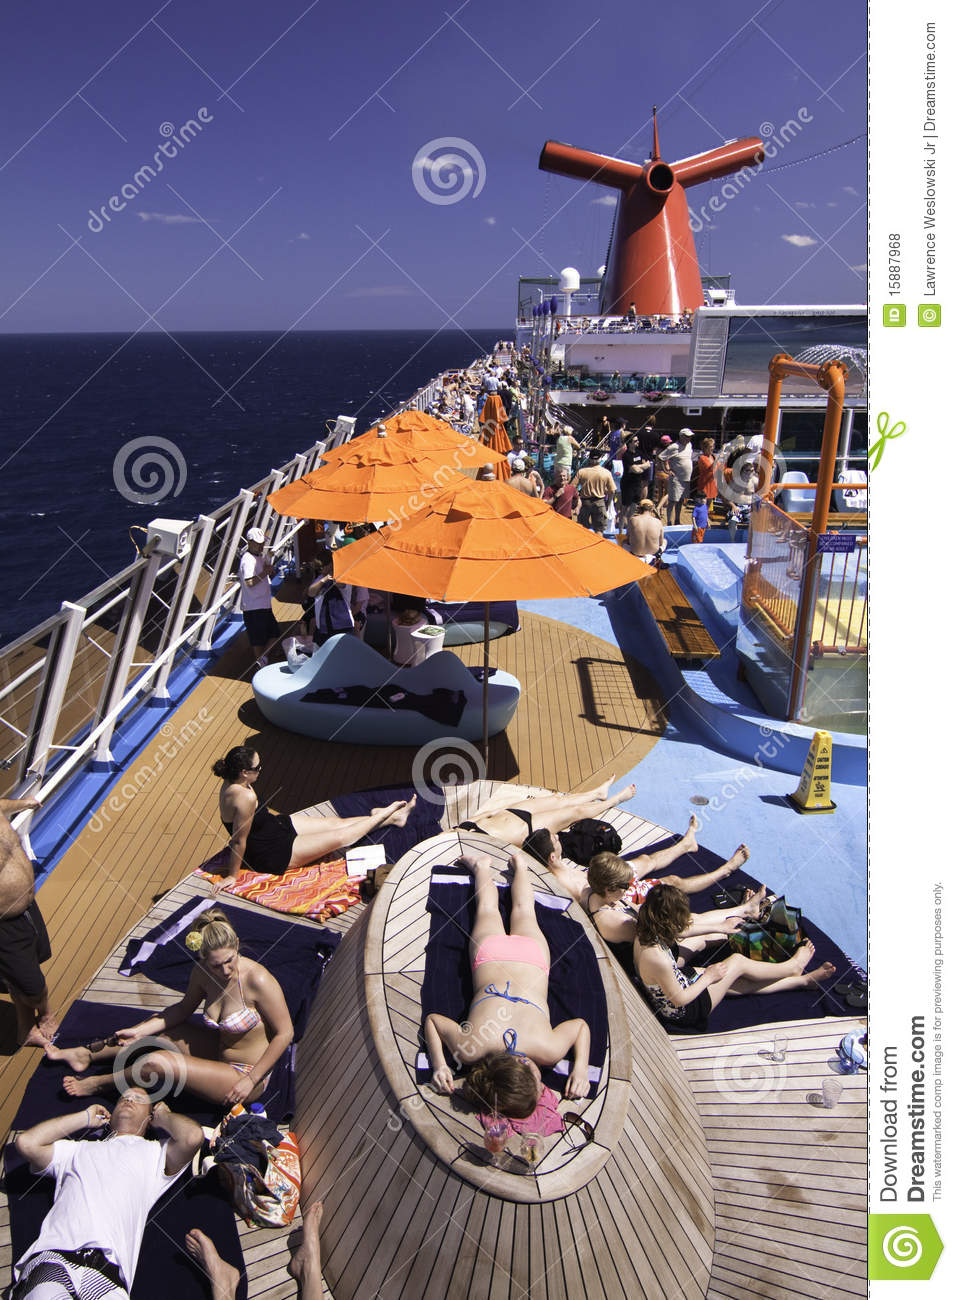 Carnival cruise ship sunning on deck editorial stock for Balcony on cruise ship